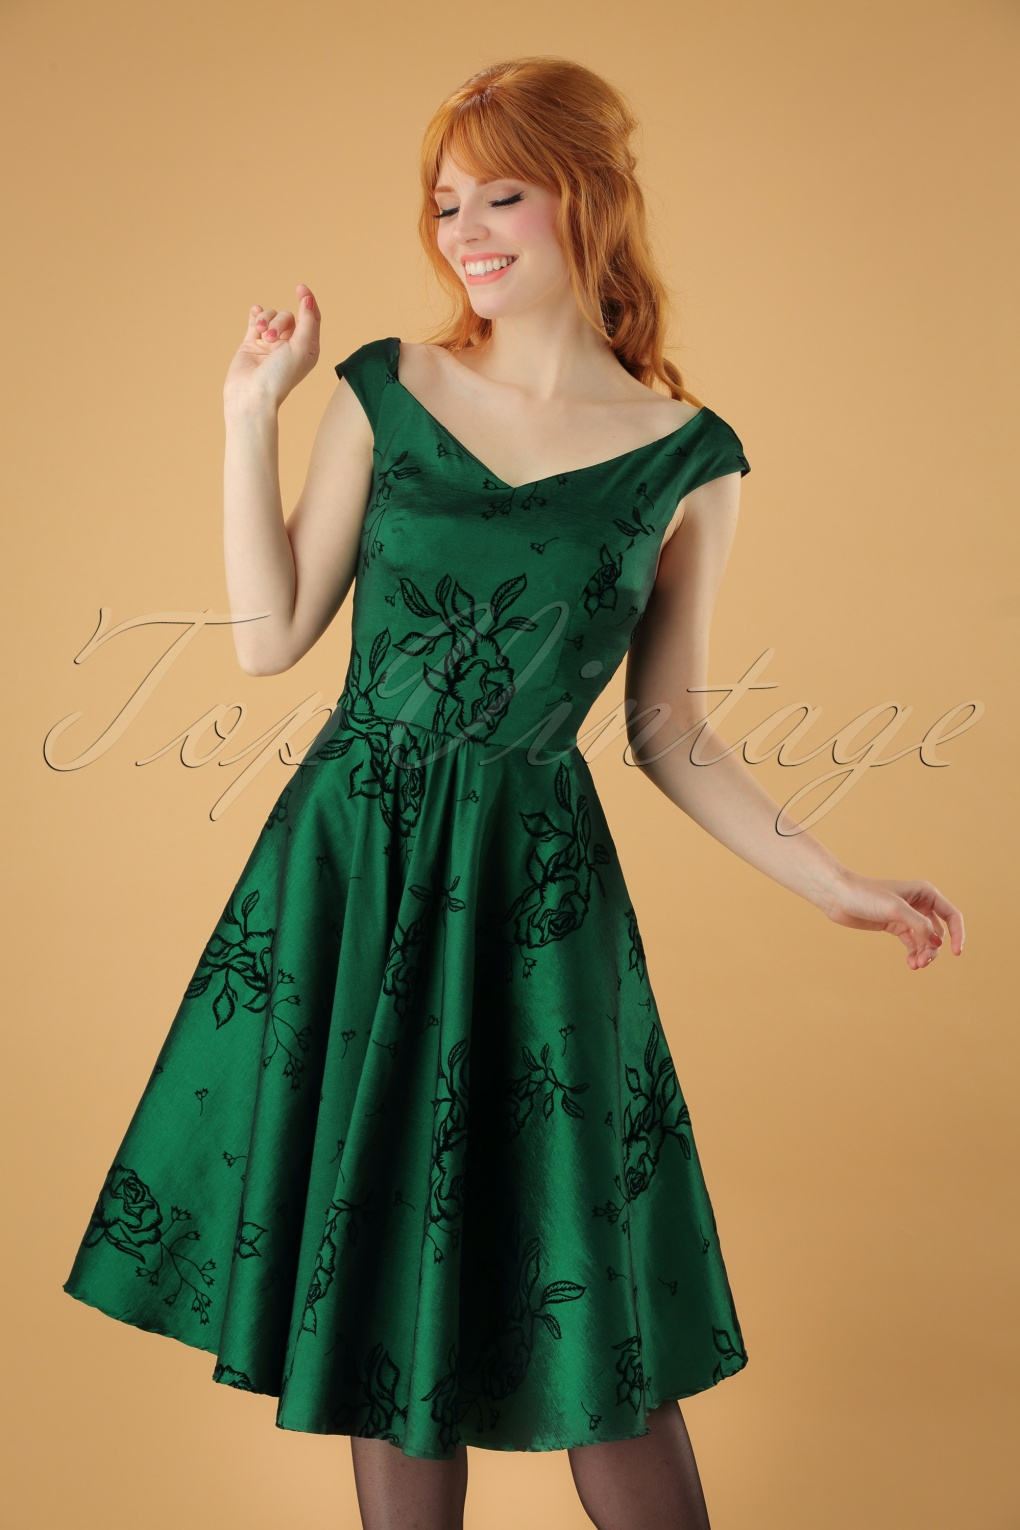 Vintage Christmas Dress | Party Dresses | Night Out Outfits 50s Lily Floral Swing Dress in Dark Green £52.49 AT vintagedancer.com